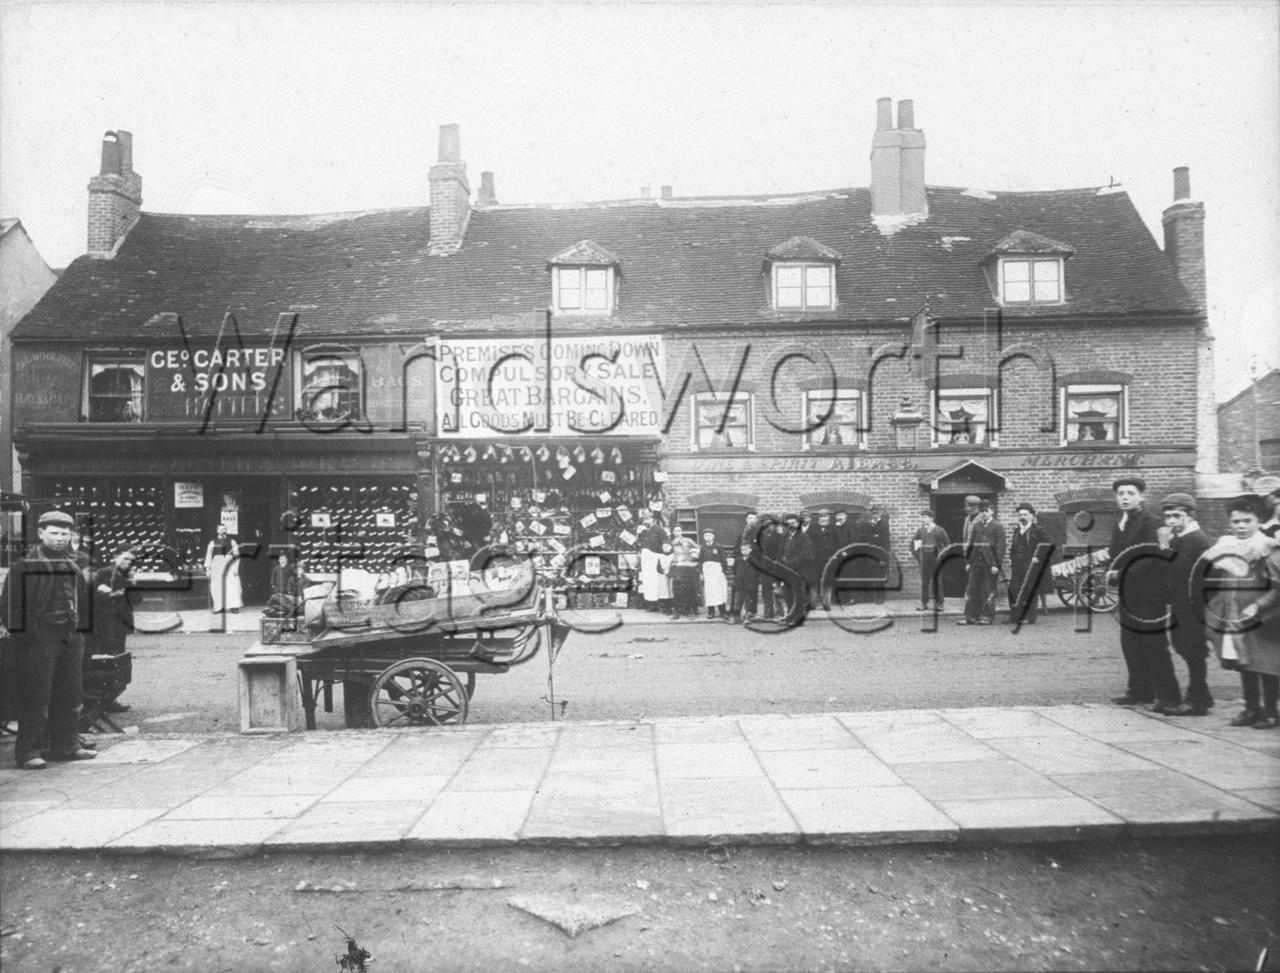 Unique Search Results  Wandsworth Borough Photos  Page  With Remarkable Old Bull Inn Wandsworth High Street  C With Endearing Garden Table Parasol Also Scribbler Covent Garden In Addition Bricks For Garden Wall And Stones For Garden As Well As Kenrokuen Garden Additionally Solar Garden Lights From Boroughphotosorg With   Remarkable Search Results  Wandsworth Borough Photos  Page  With Endearing Old Bull Inn Wandsworth High Street  C And Unique Garden Table Parasol Also Scribbler Covent Garden In Addition Bricks For Garden Wall From Boroughphotosorg